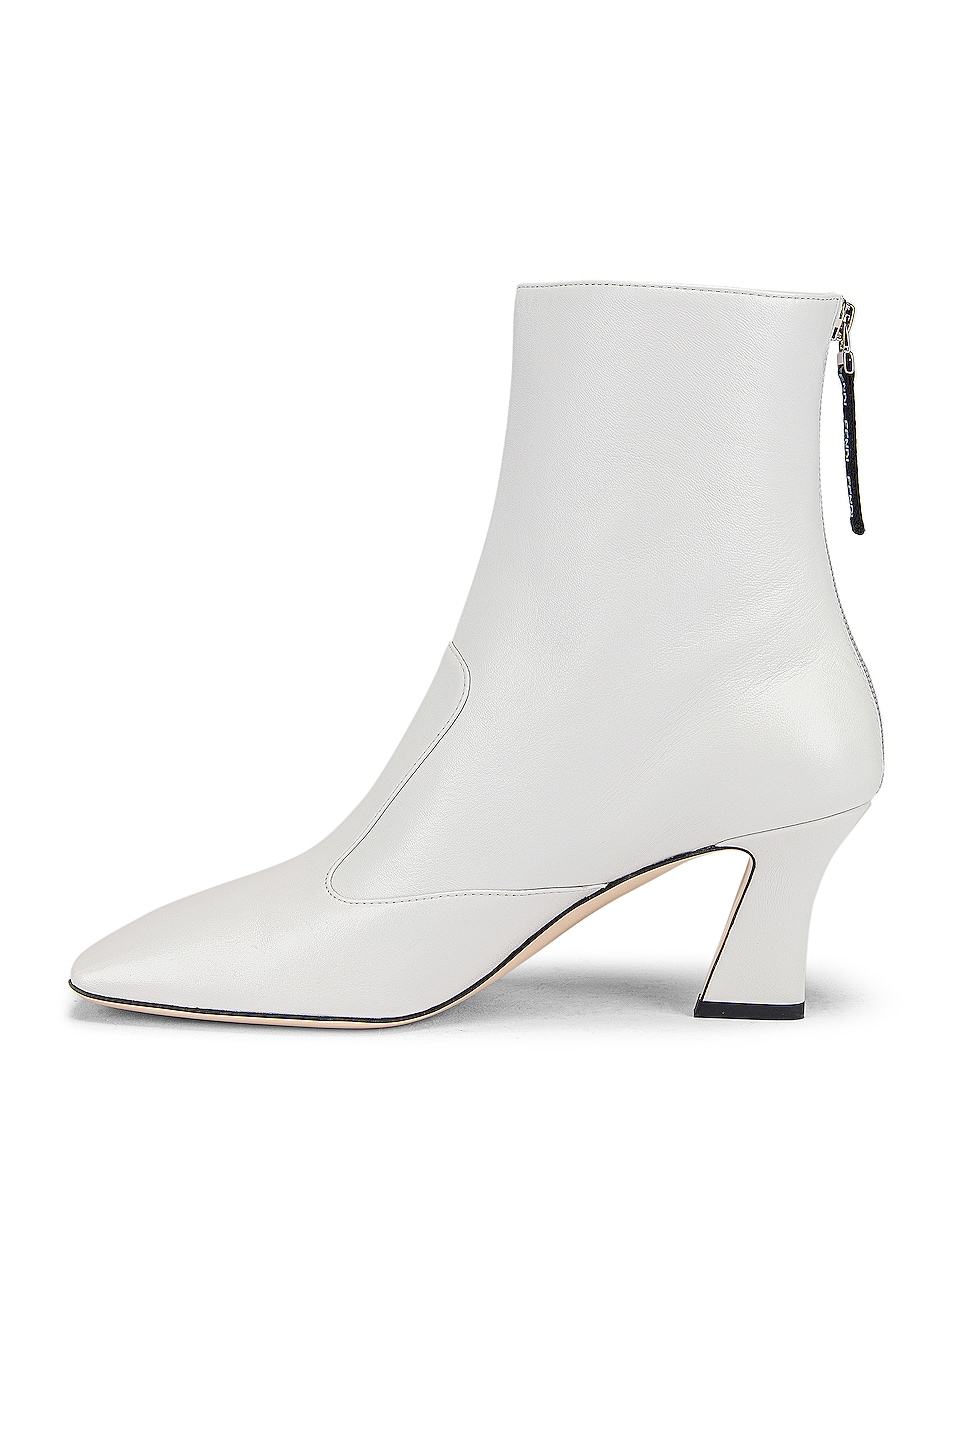 Image 5 of Fendi Leather Ankle Booties in White